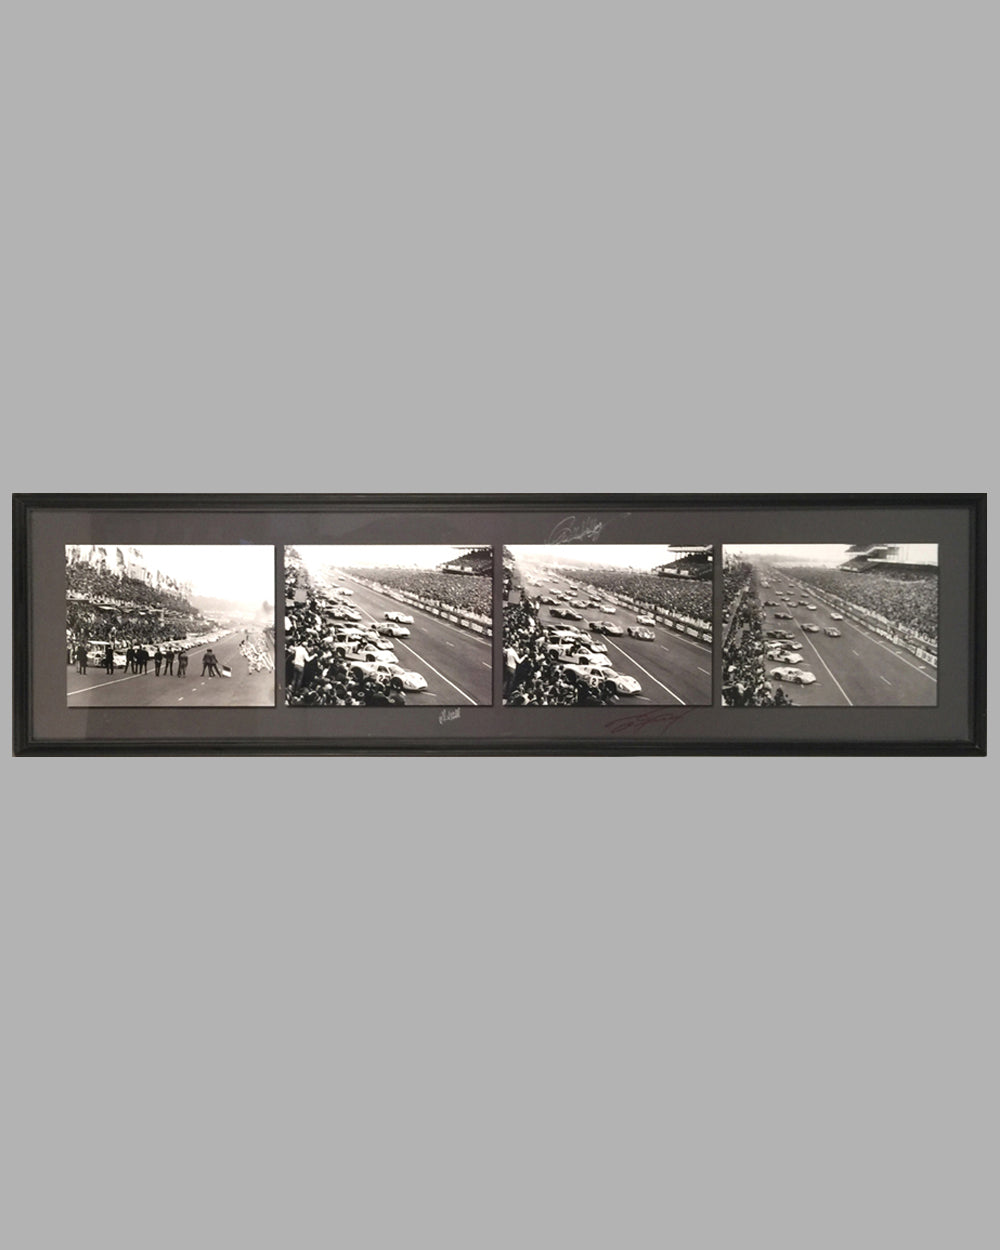 1967 - 24 Hours of Le Mans autographed 4 photo montage of the progression of the start of the race